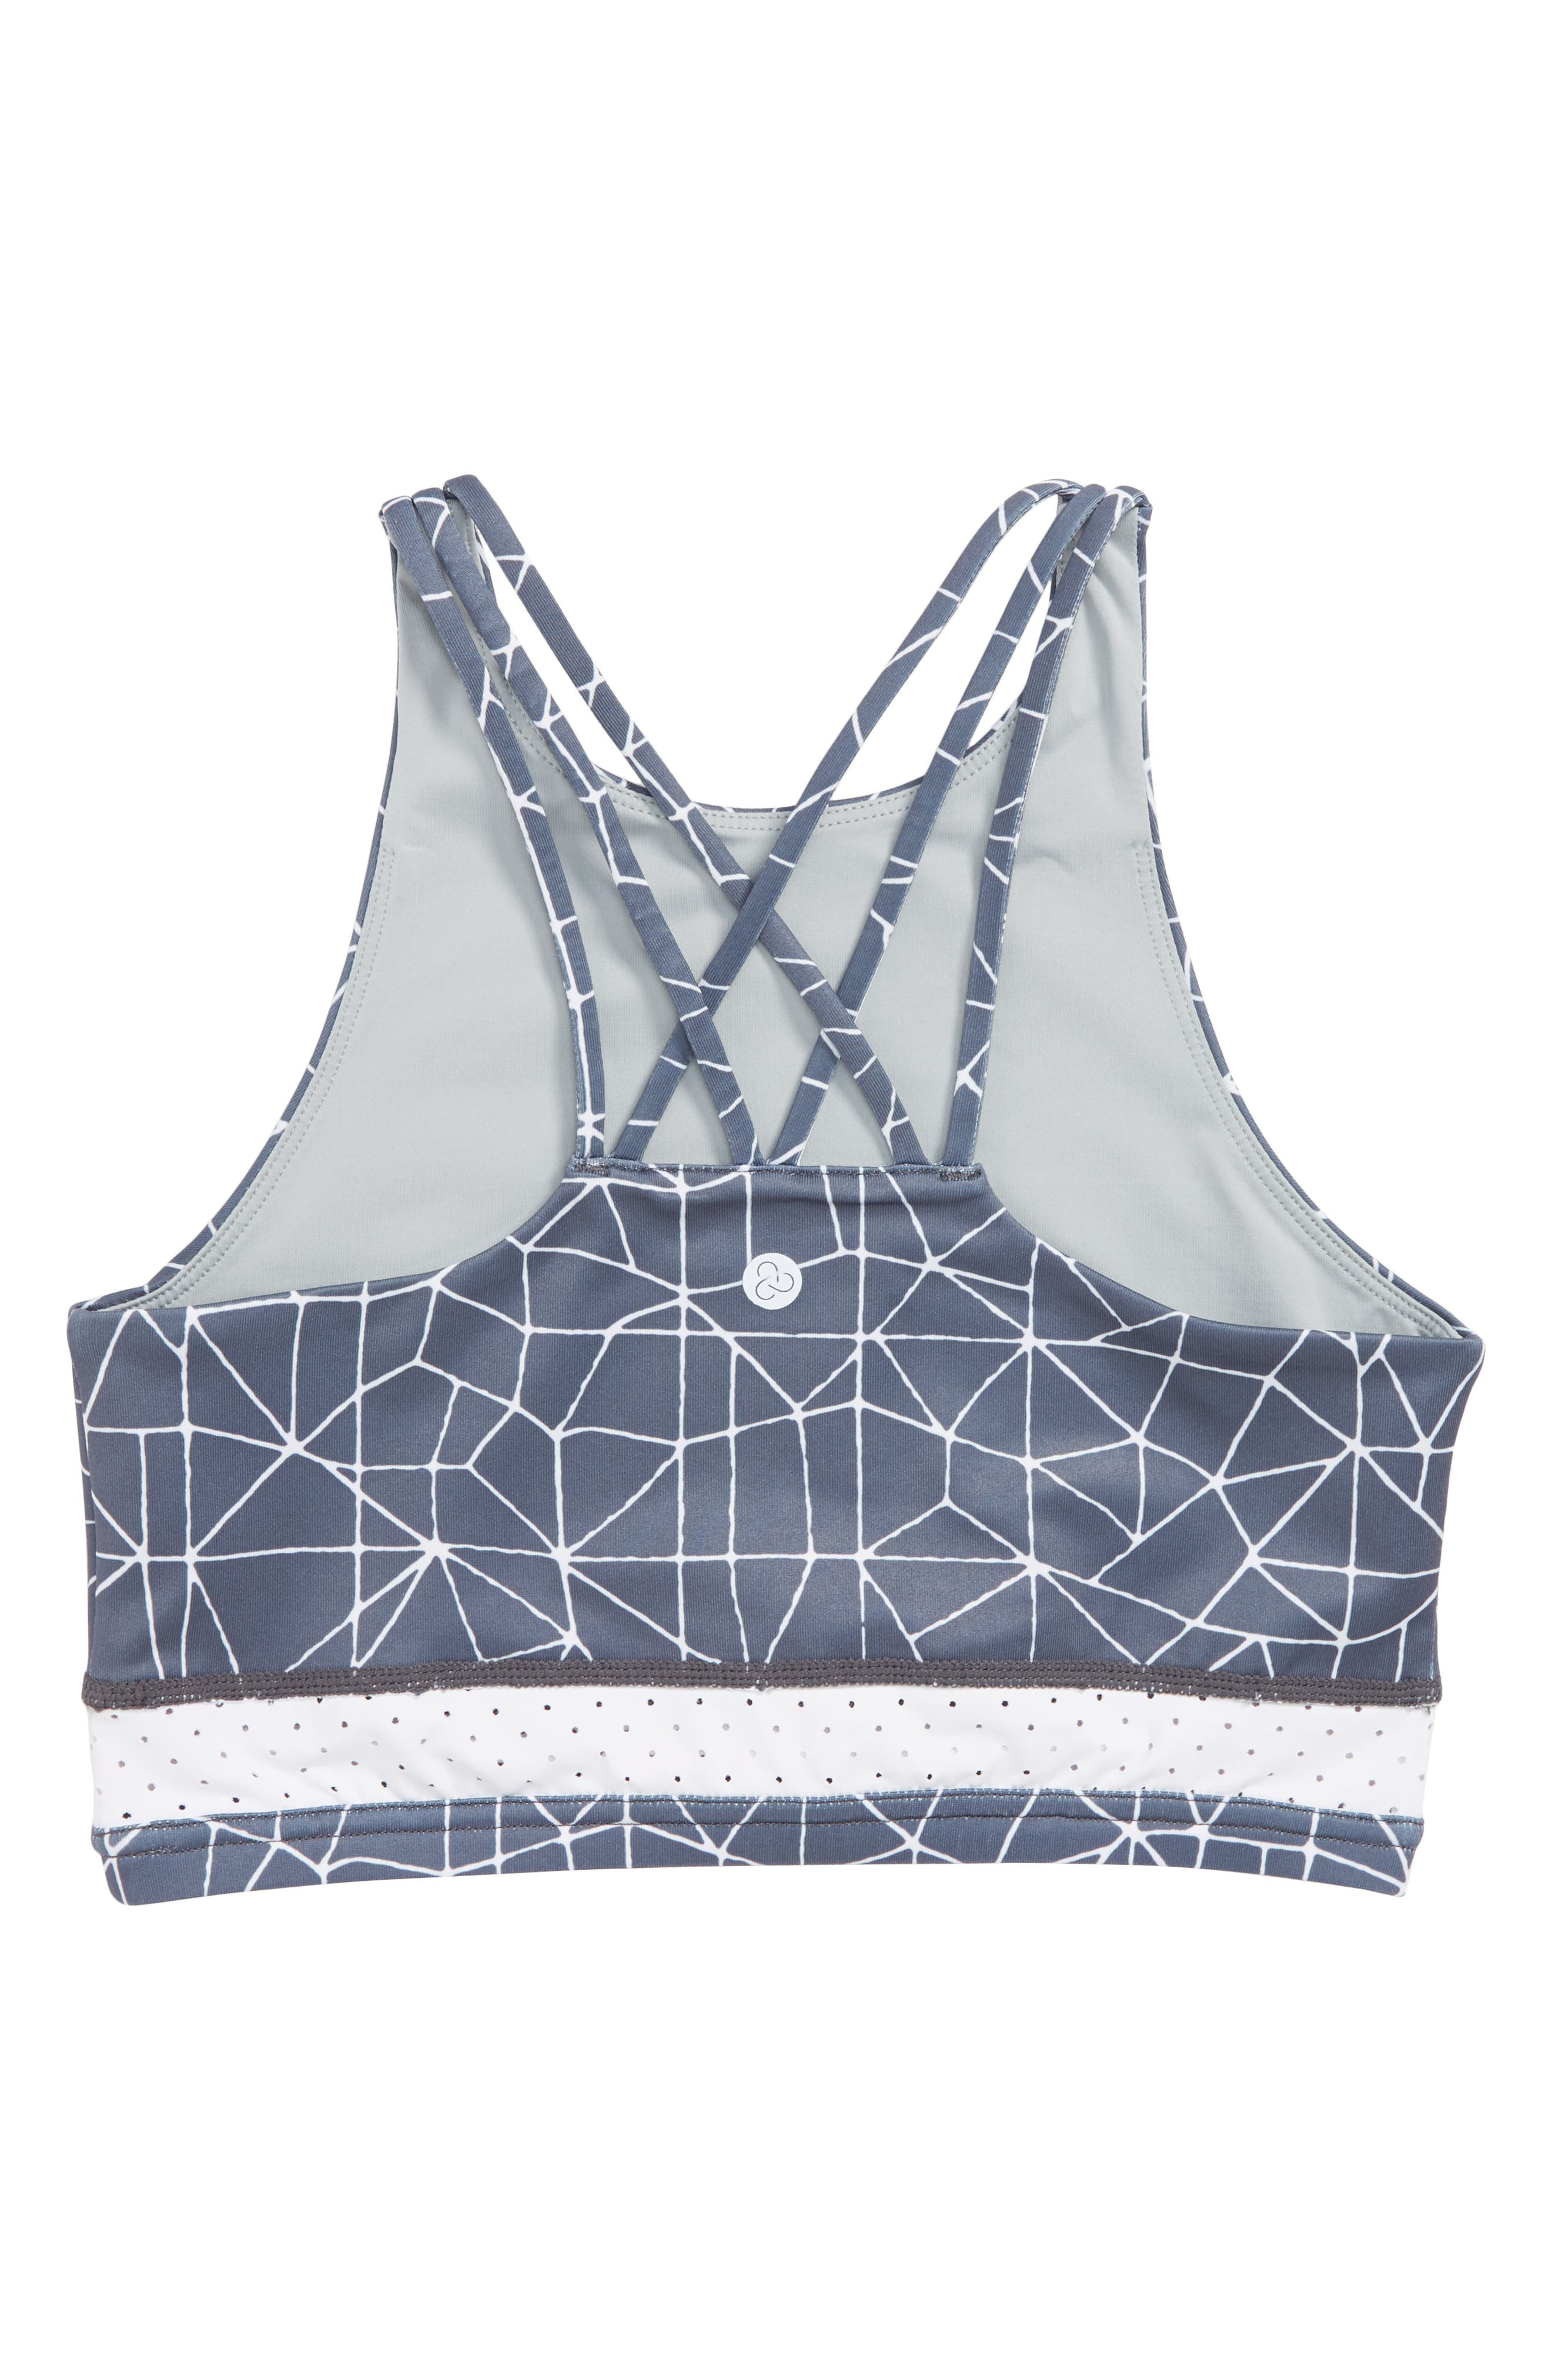 Strappy Racerback Sports Bra,                             Alternate thumbnail 2, color,                             GREY GRAPHITE CRACKLE